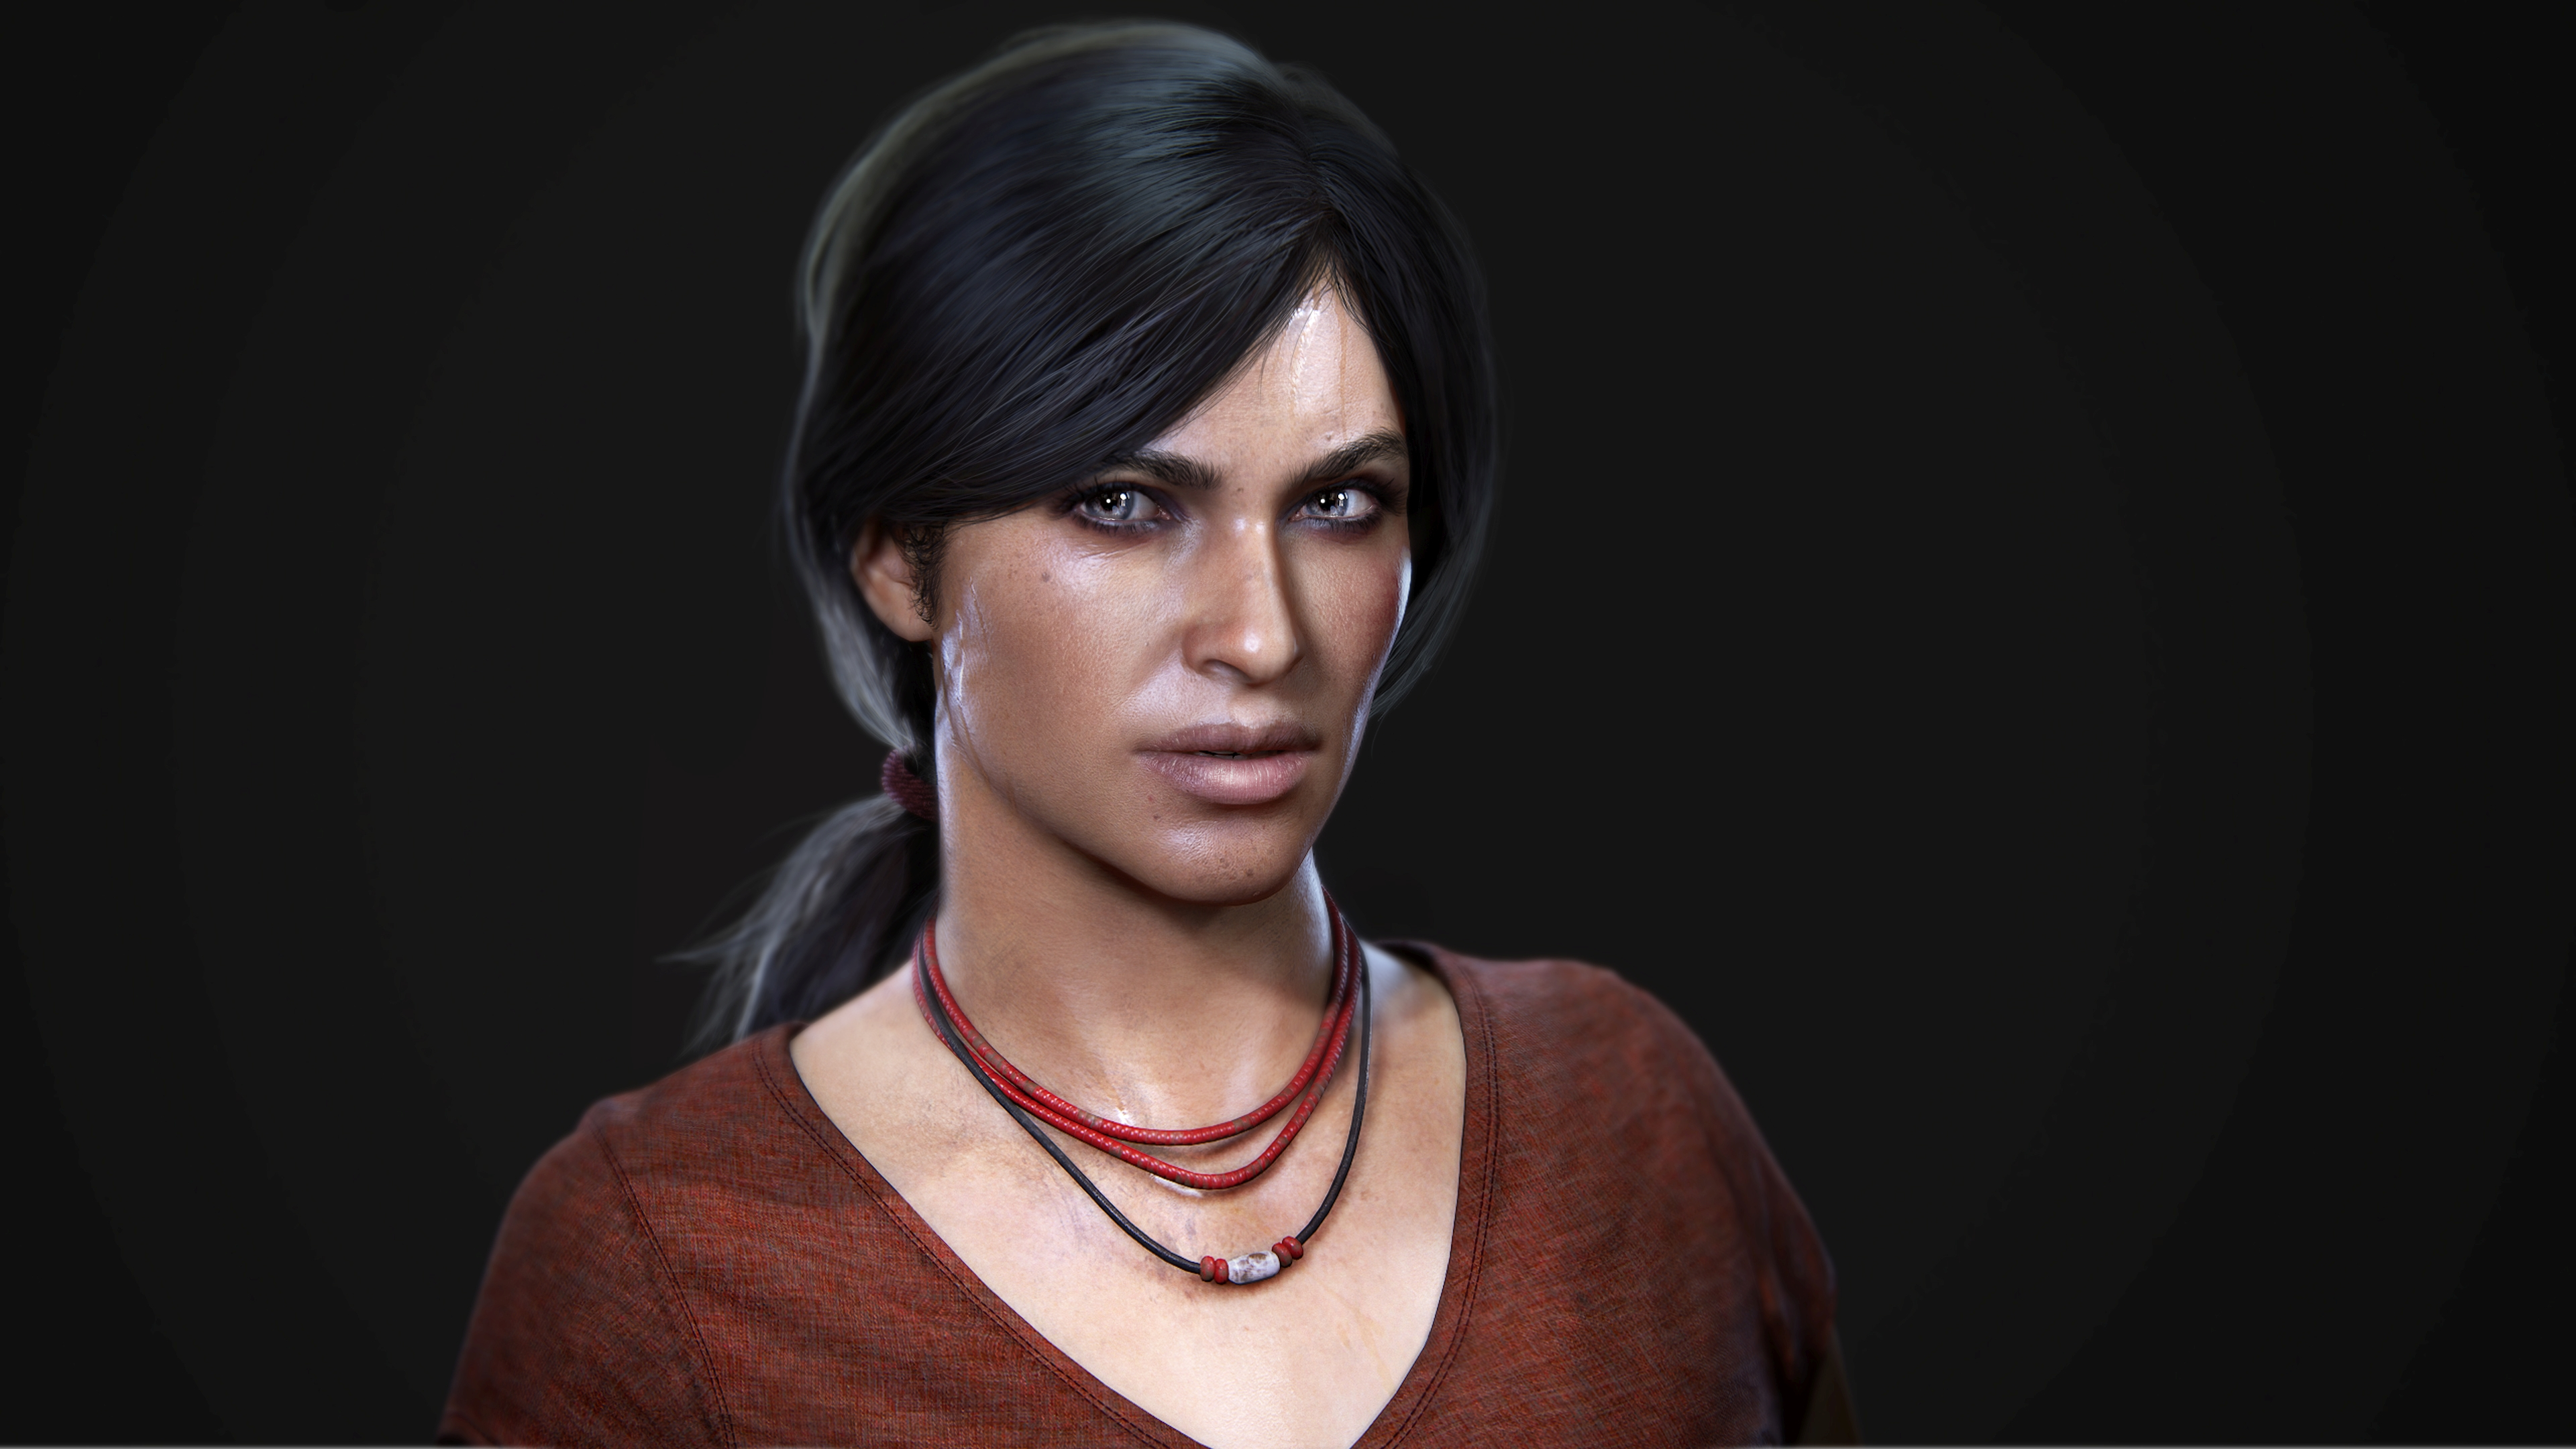 Uncharted The Lost Legacy 4k 2017 Hd Games 4k Wallpapers